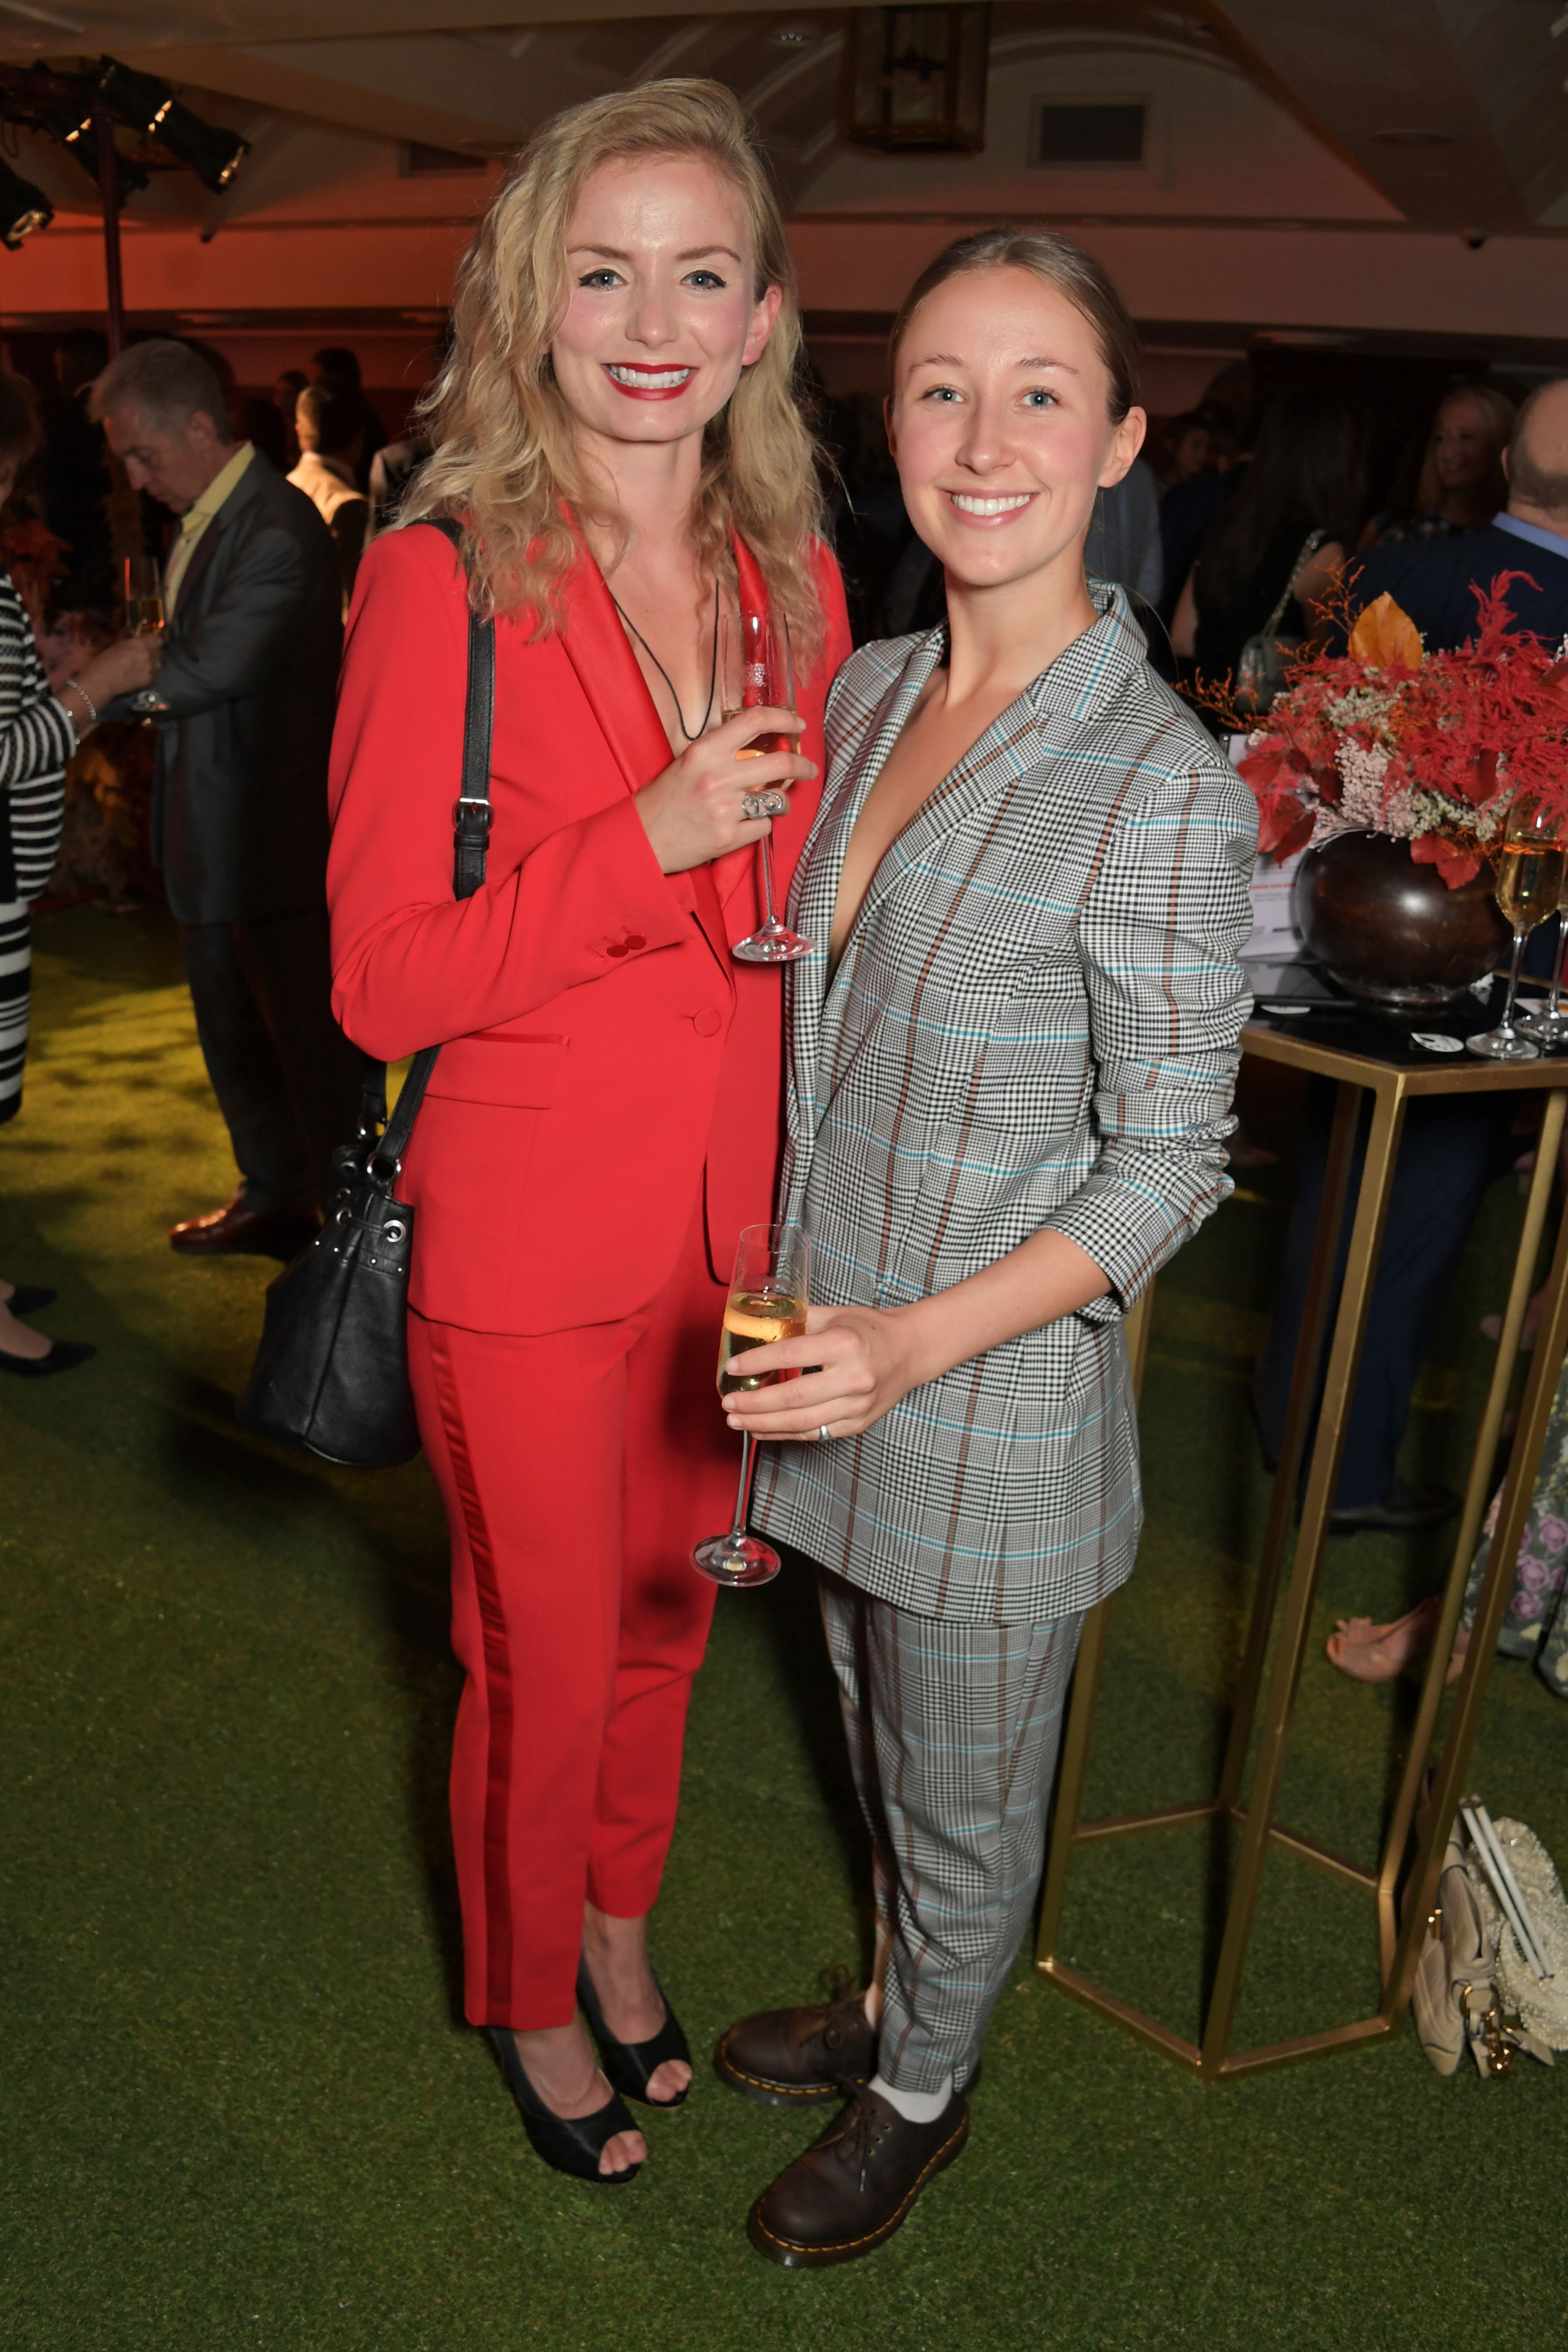 Erin Doherty with partner Sophie Melville at the Midsummer Party for The Old Vic in 2019 in London, England | Source: Getty Images